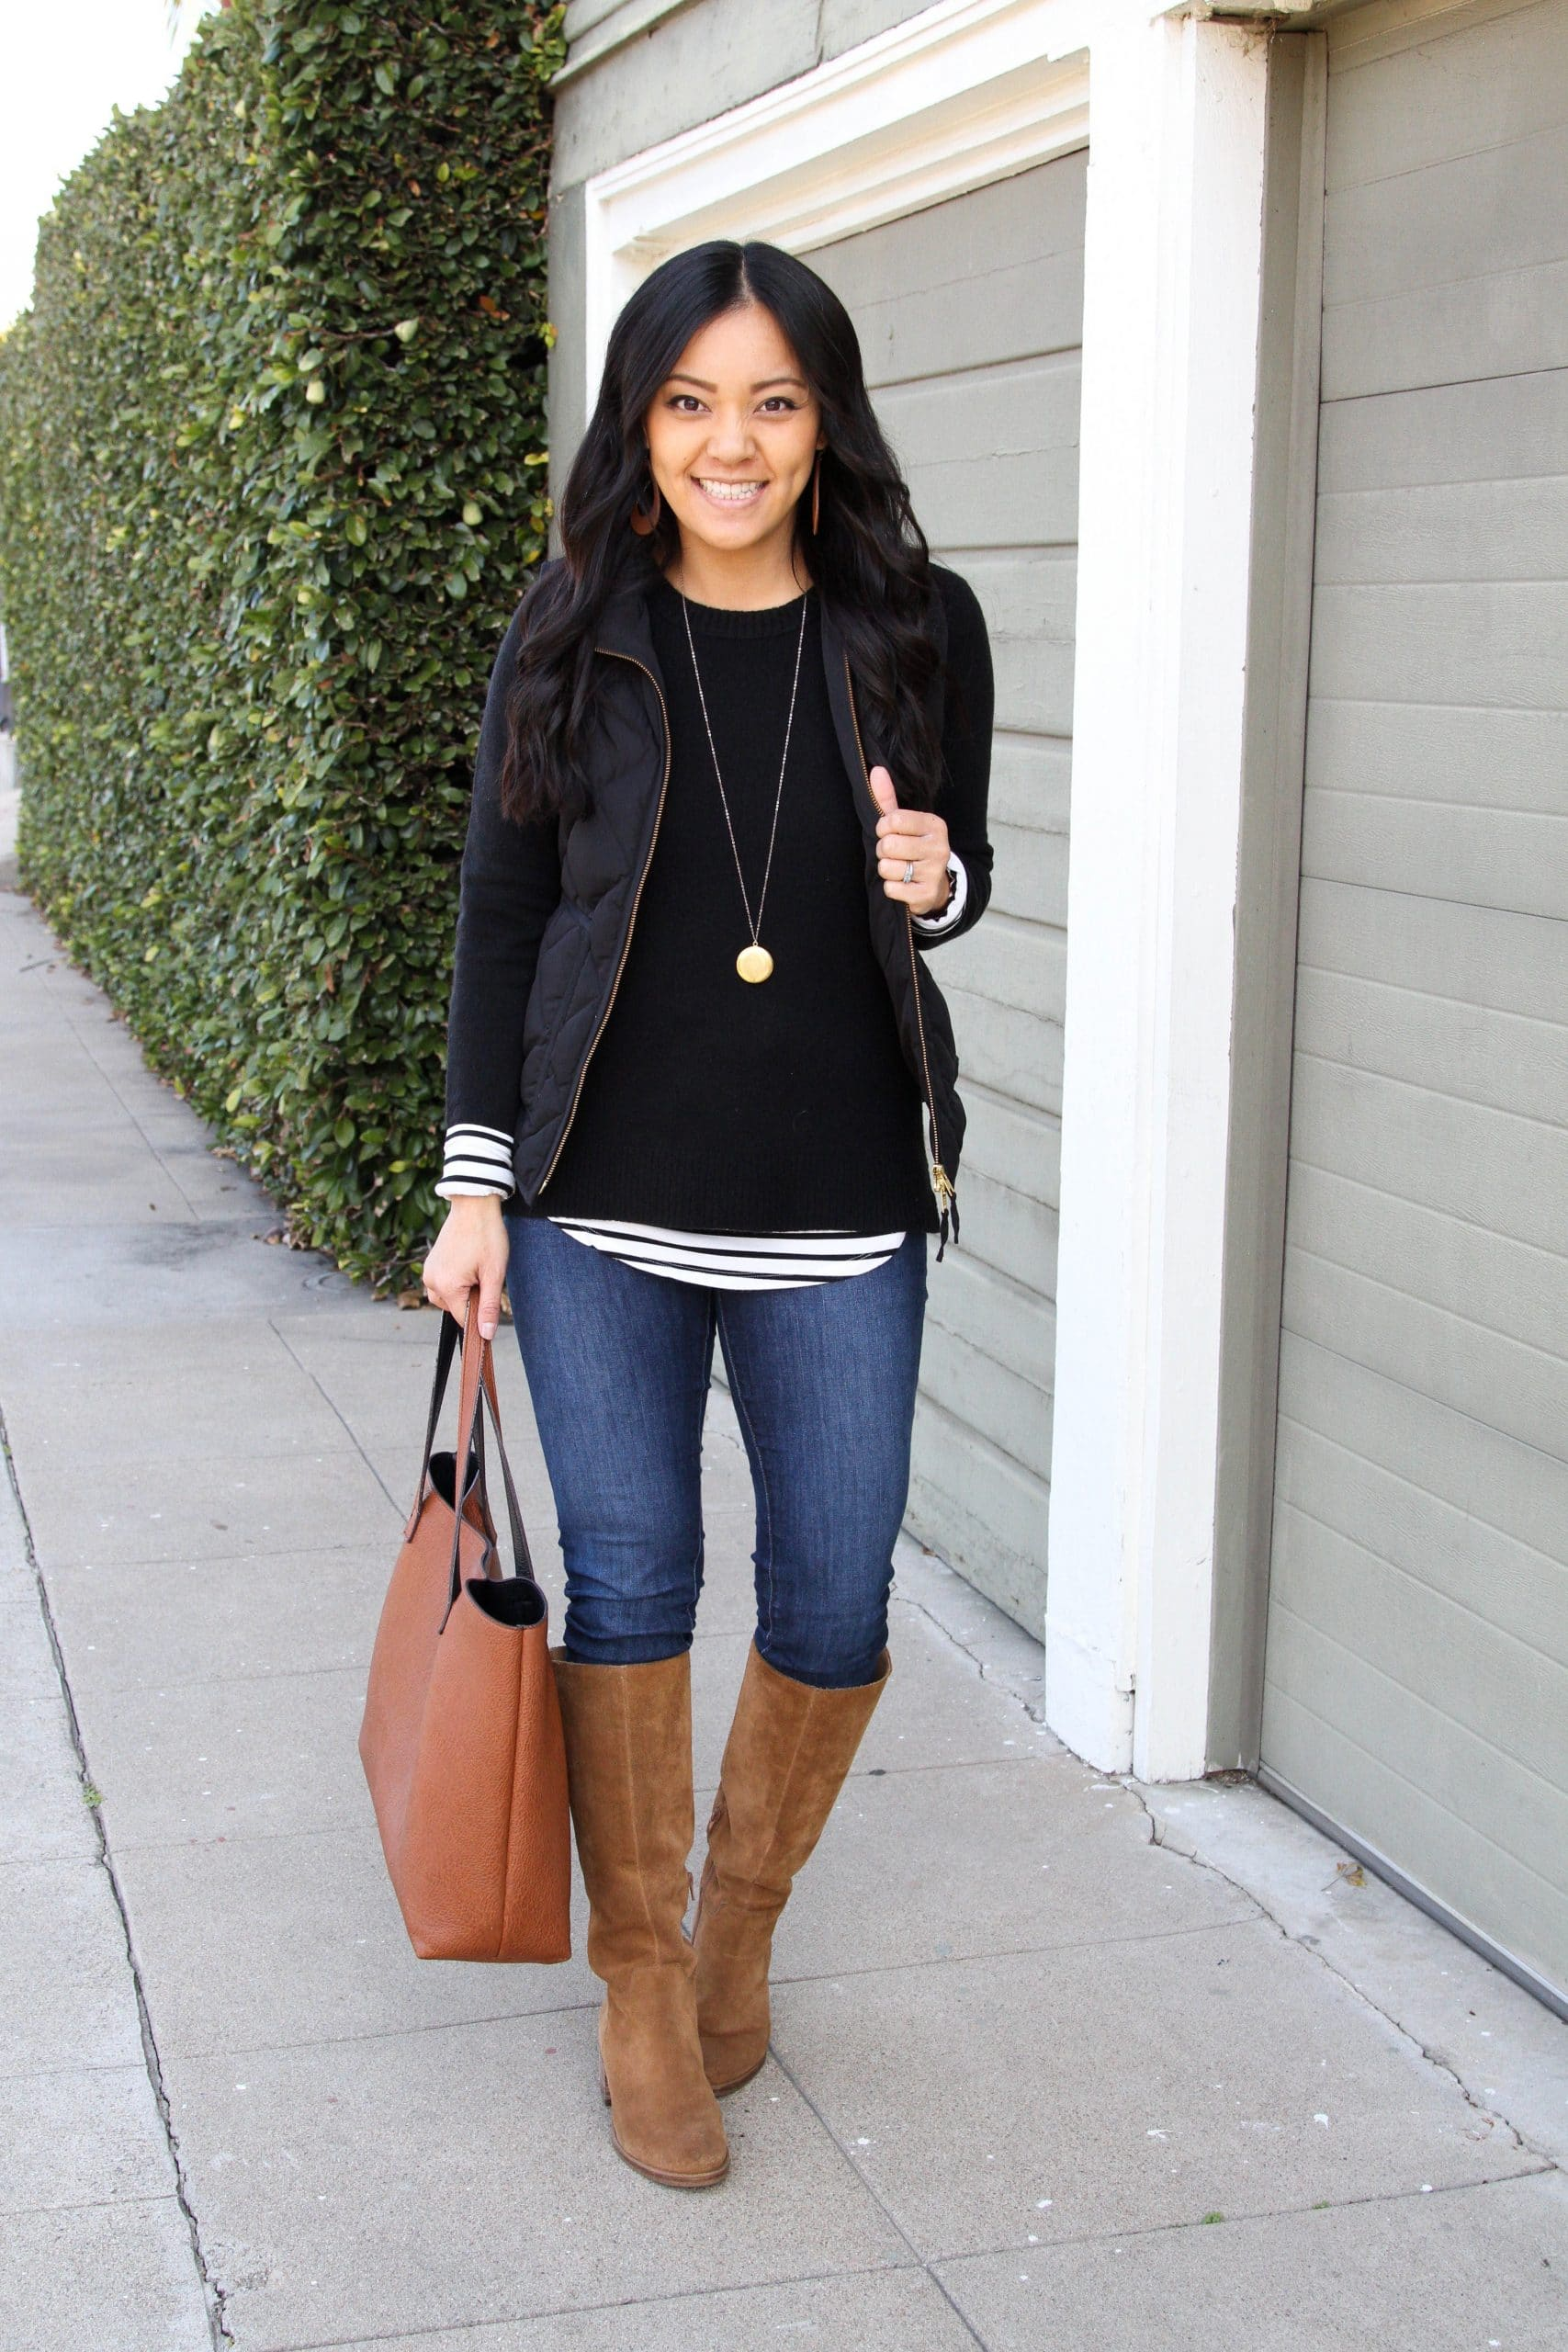 Winter Casual Outfit: long sleeve striped tee + black sweater + black quilted vest + skinny jeans + tan suede boots + cognac tote + long gold circle pendant necklace + tan leather earrings